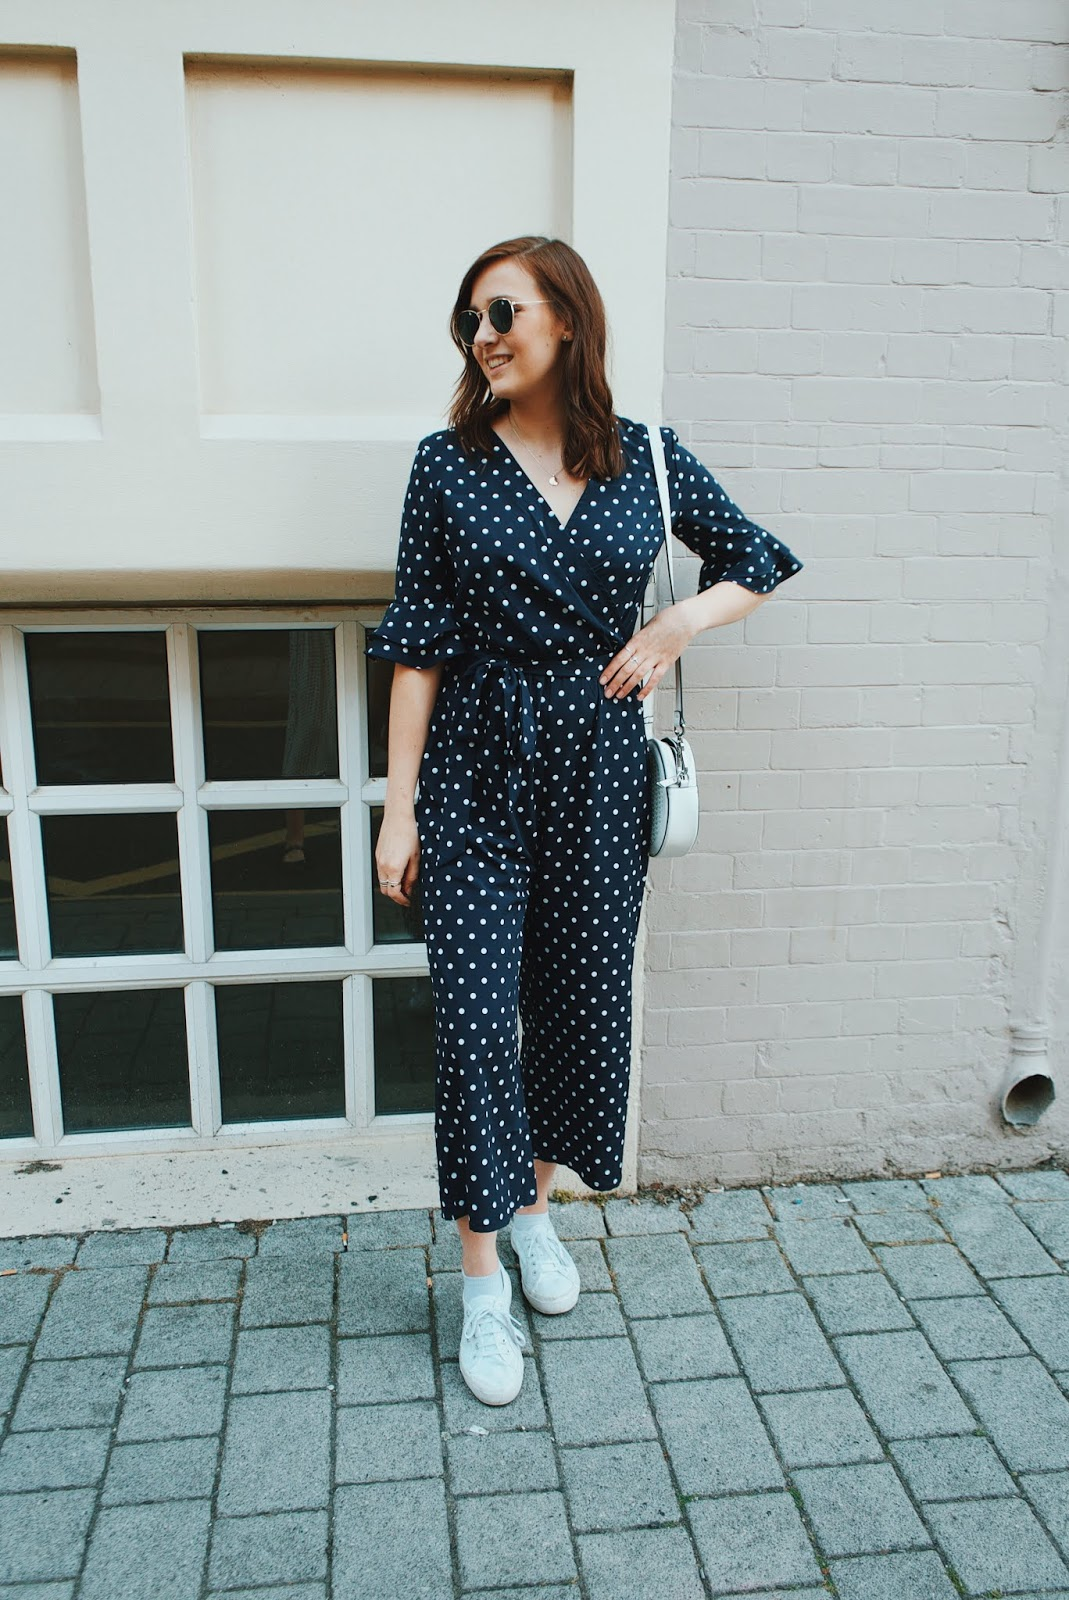 The Polka Dot Jumpsuit // Lauren Rose Style // Fashion Blogger London OOTD WIWT